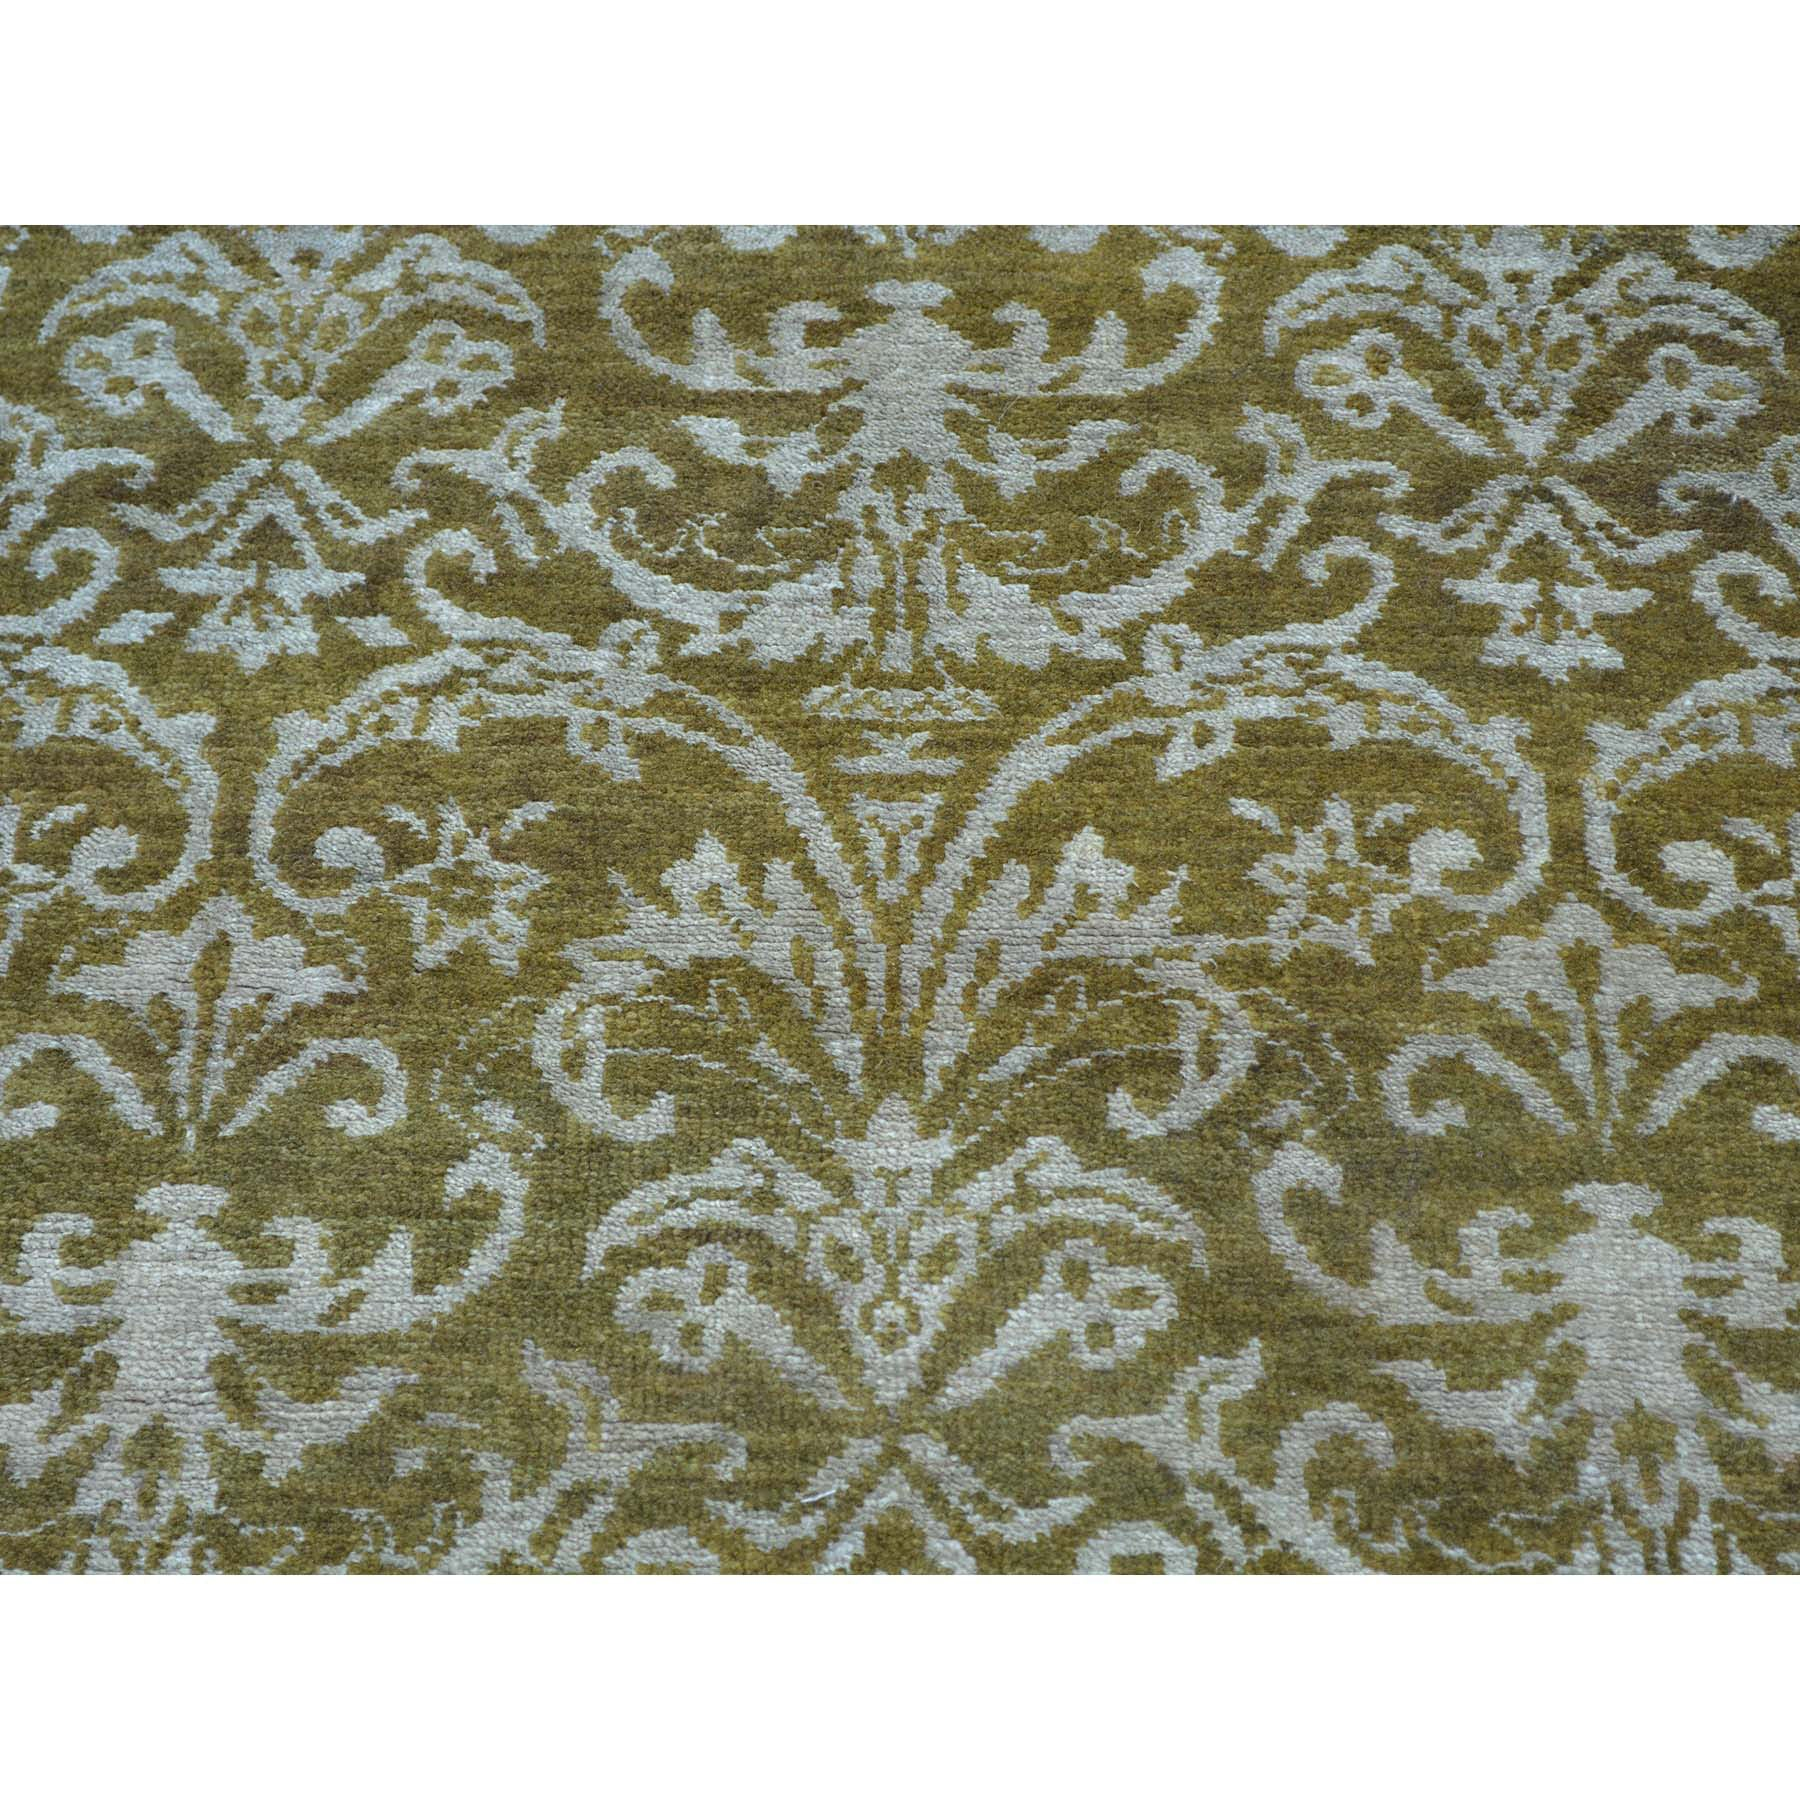 "Handmade Modern and Contemporary Runner Rug > Design# SH27443 > Size: 2'-4"" x 7'-6"" [ONLINE ONLY]"